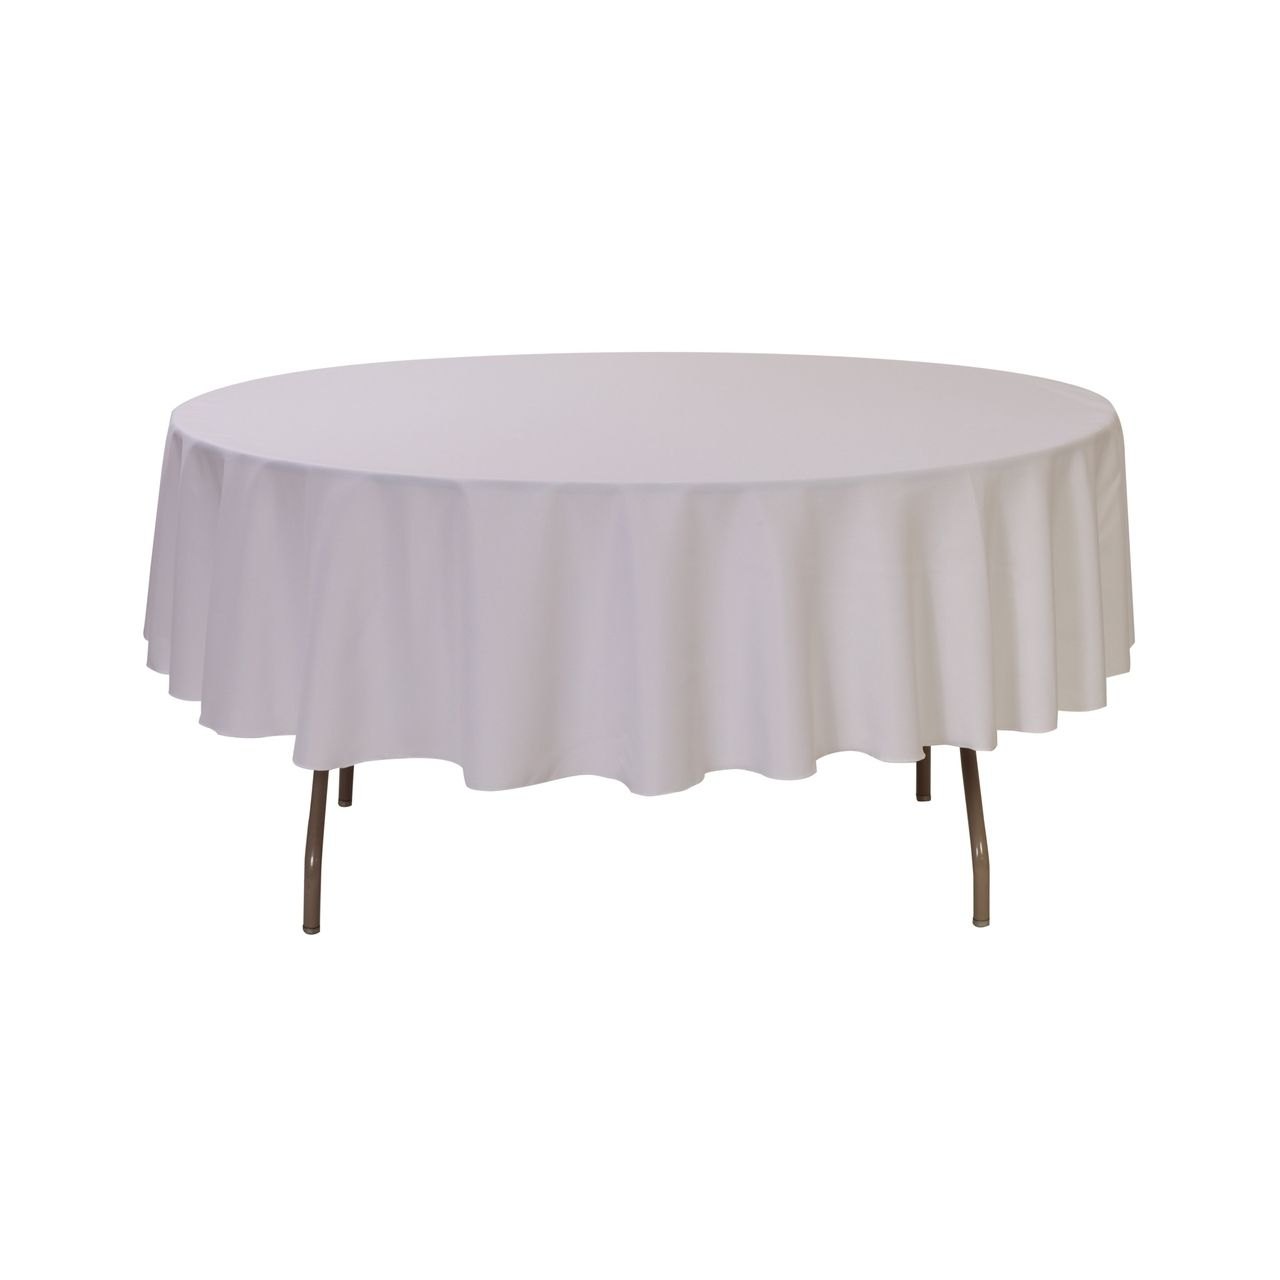 90 Inch Round Polyester Tablecloth White | Round ...